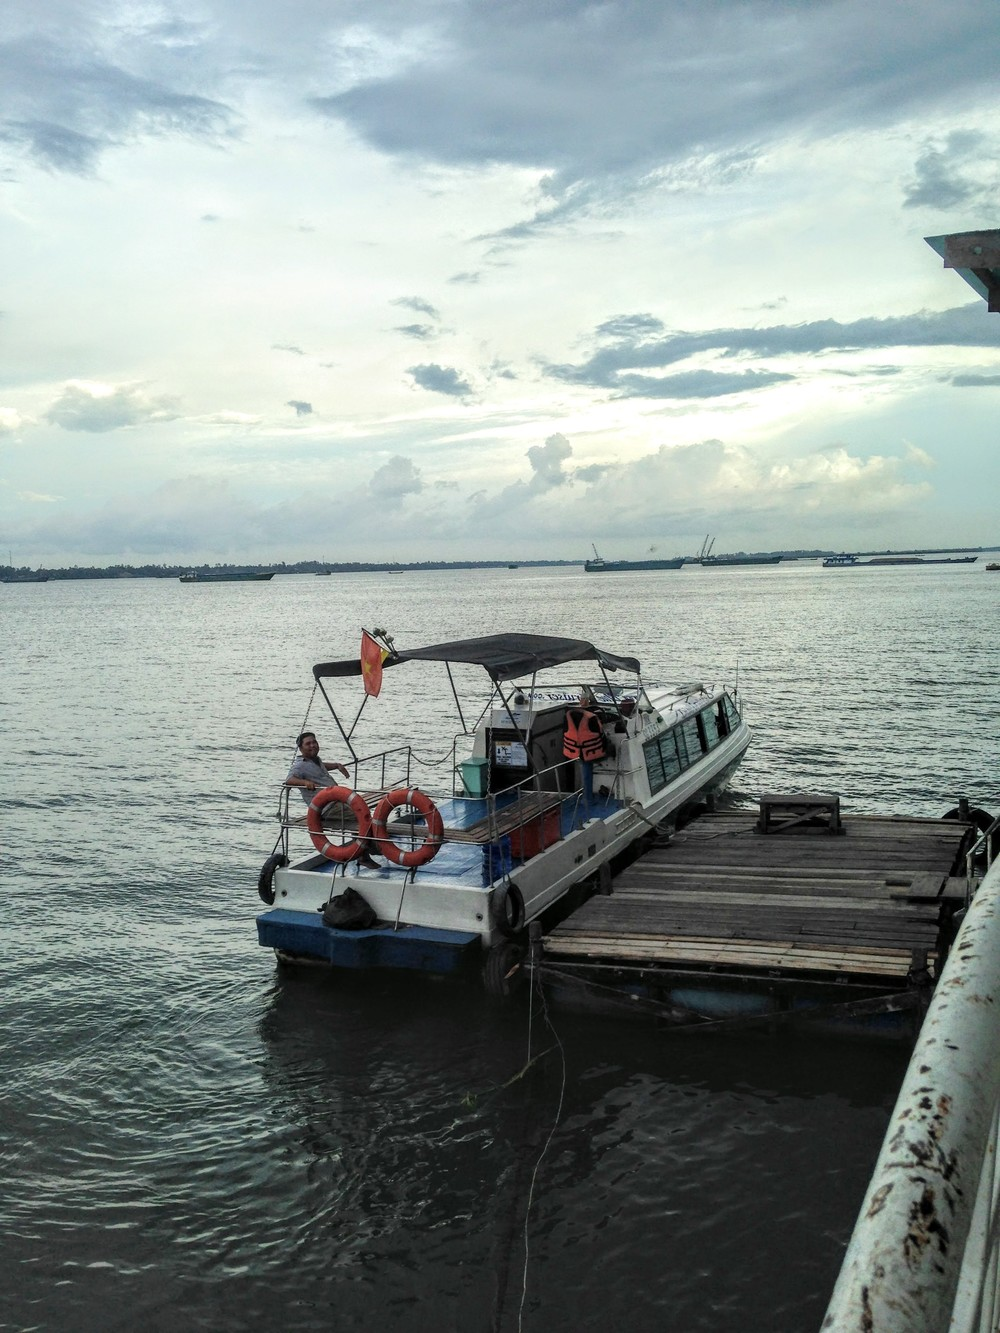 Our boat from Cambodia to VIetnam